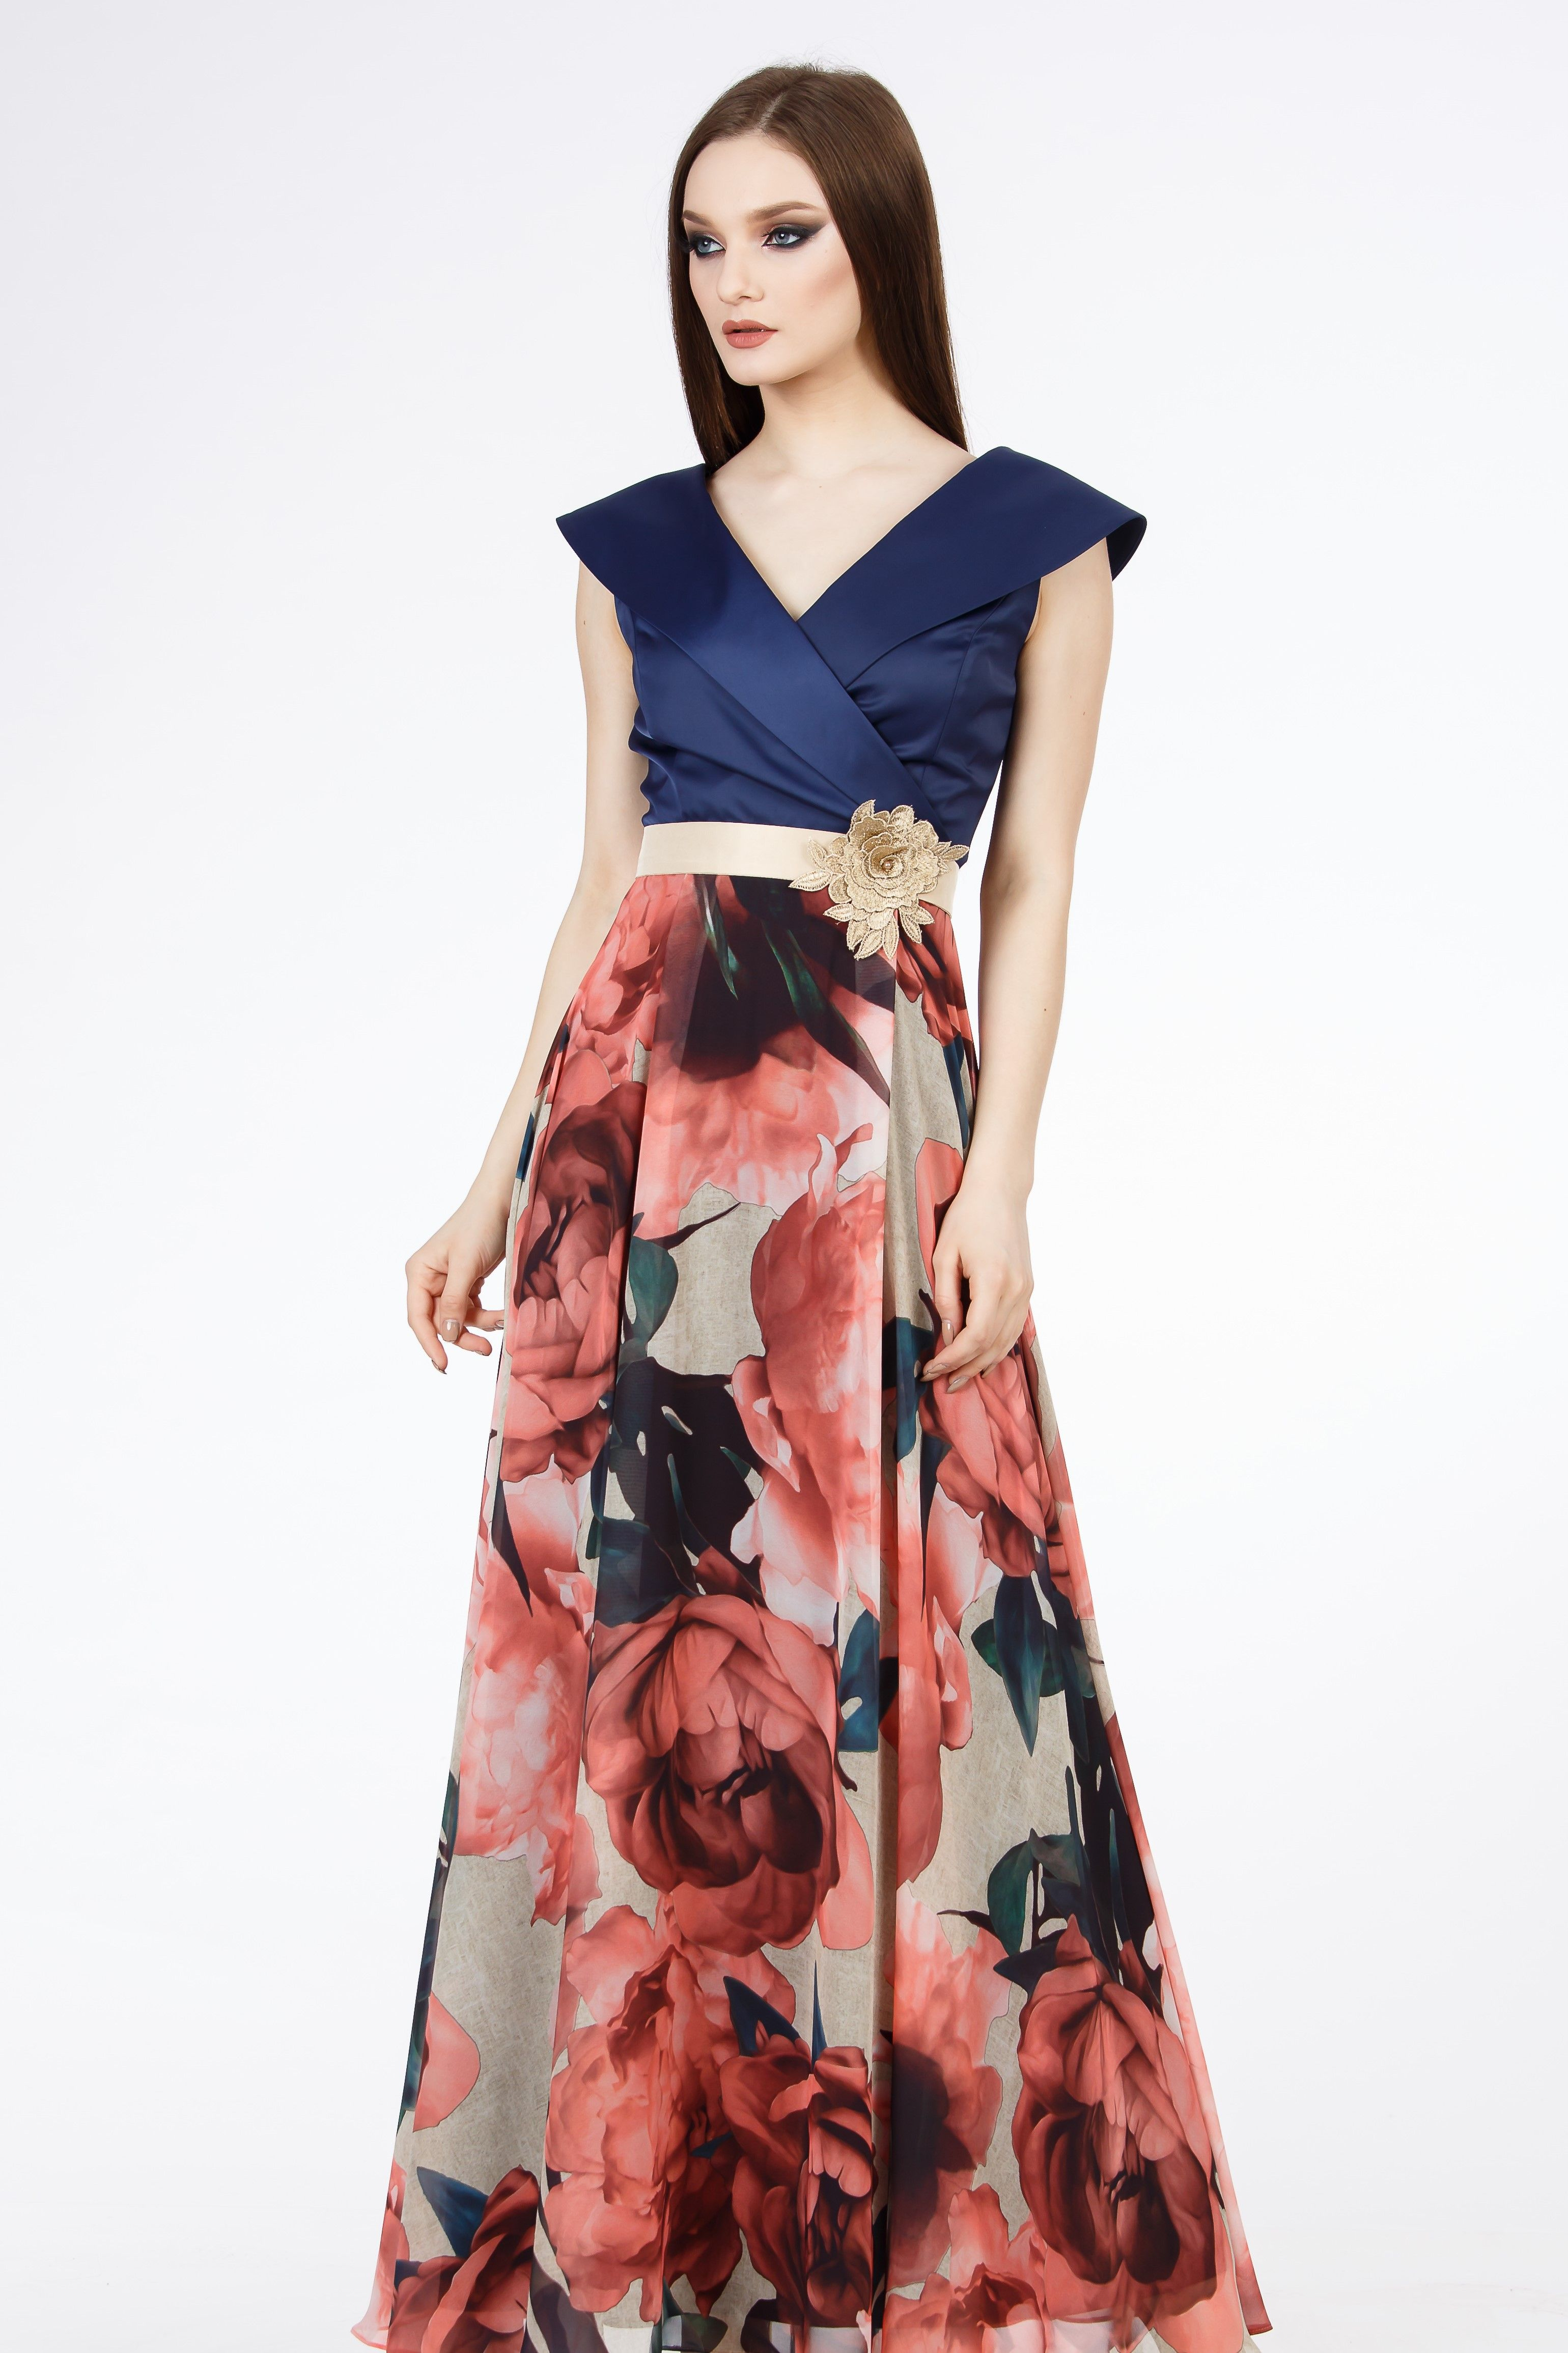 Floral Dress Summer Dress Spring Summer Outfit Ideea Special Wear